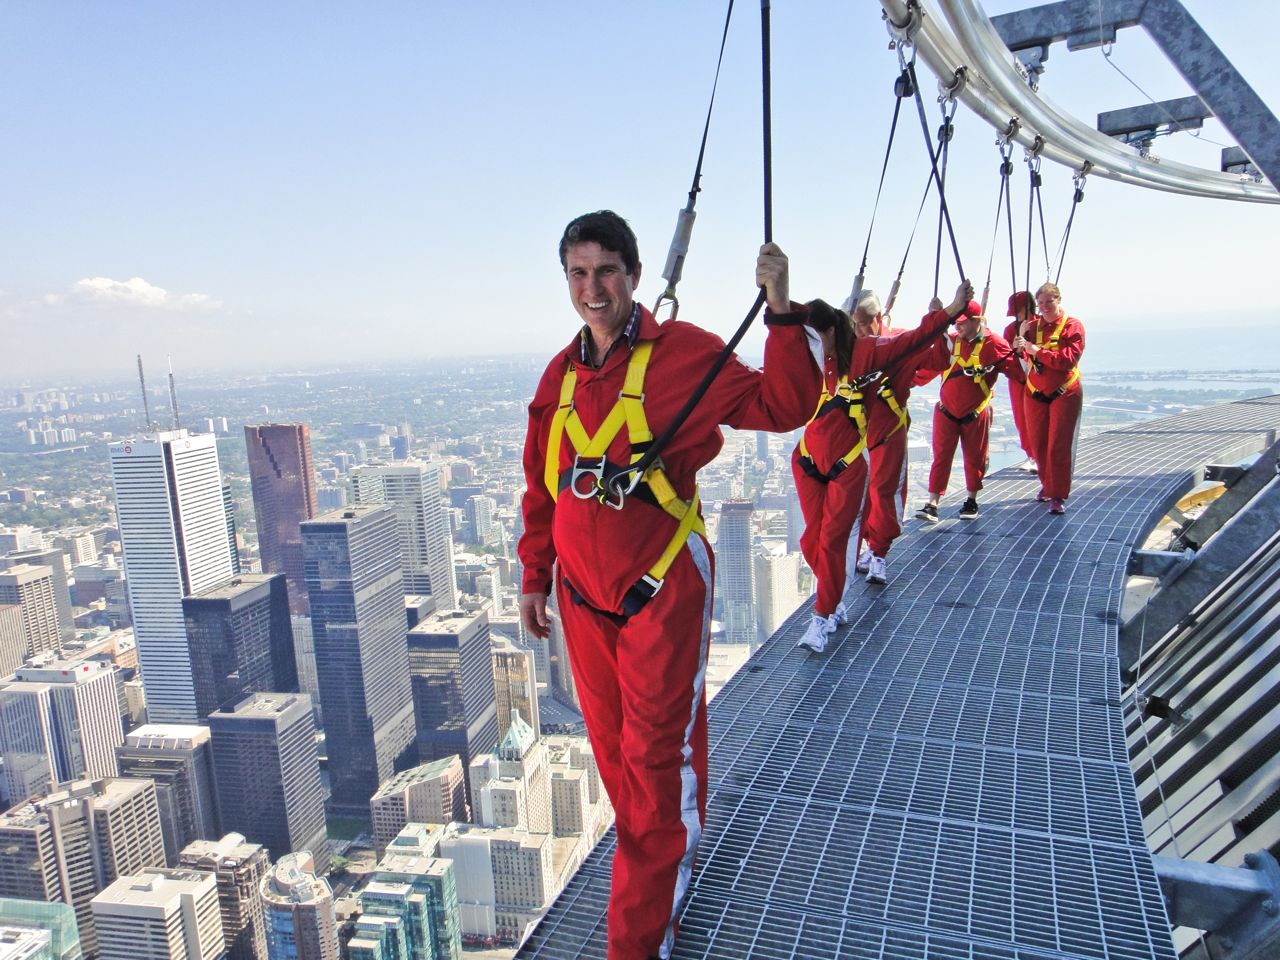 5 Adventures That Are Sure To Bring out the Dare Devil in You